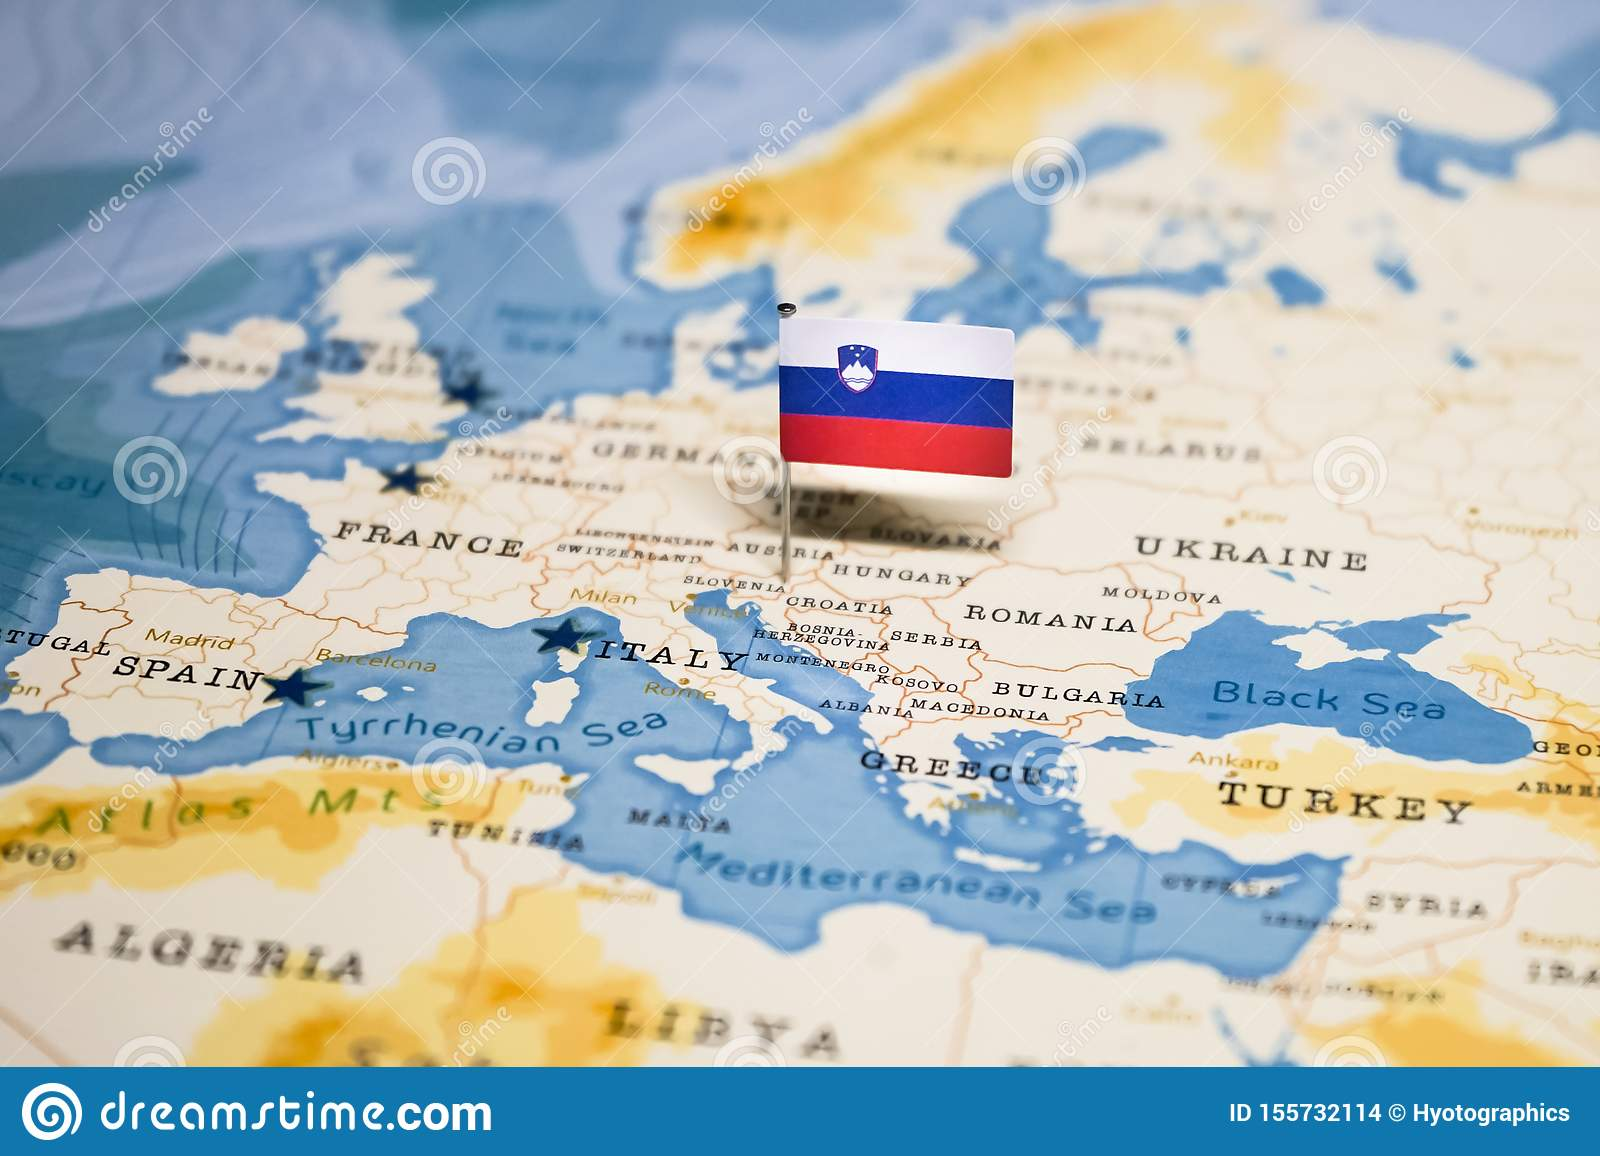 Picture of: The Flag Of Slovenia In The World Map Stock Photo Image Of City Geography 155732114